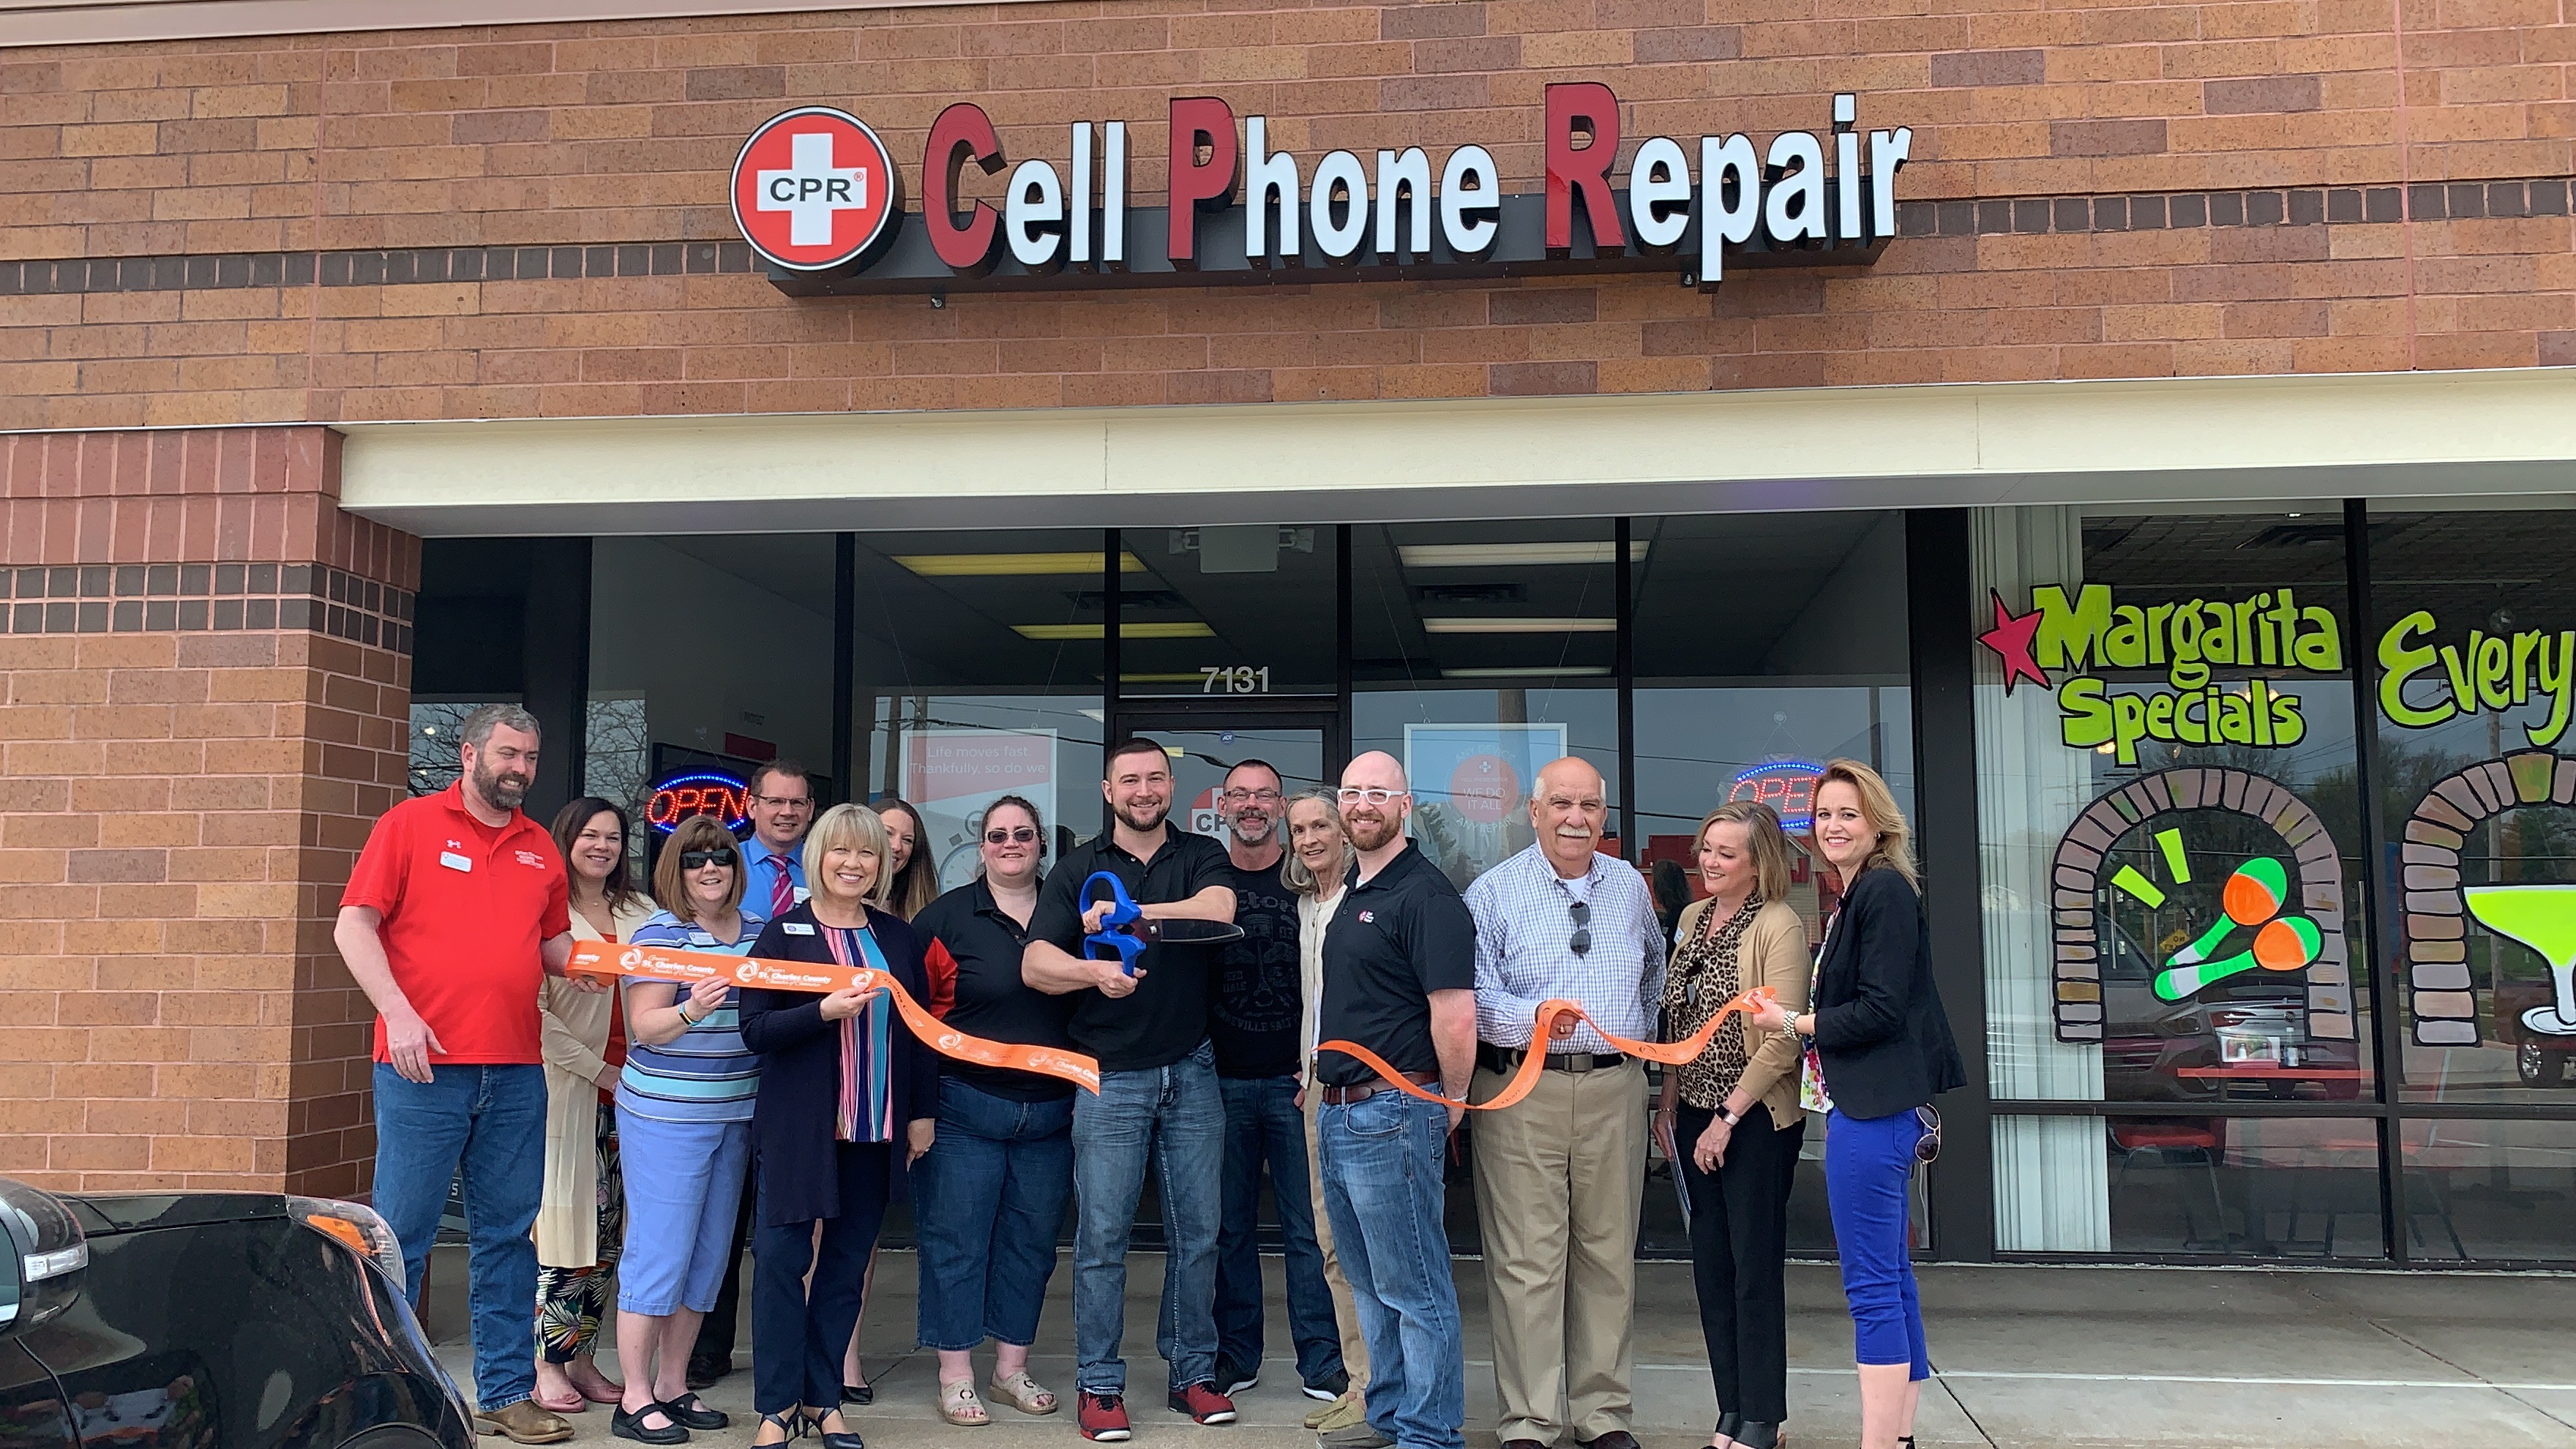 CPR – Cell Phone Repair Celebrates  Grand Opening with Ribbon Cutting